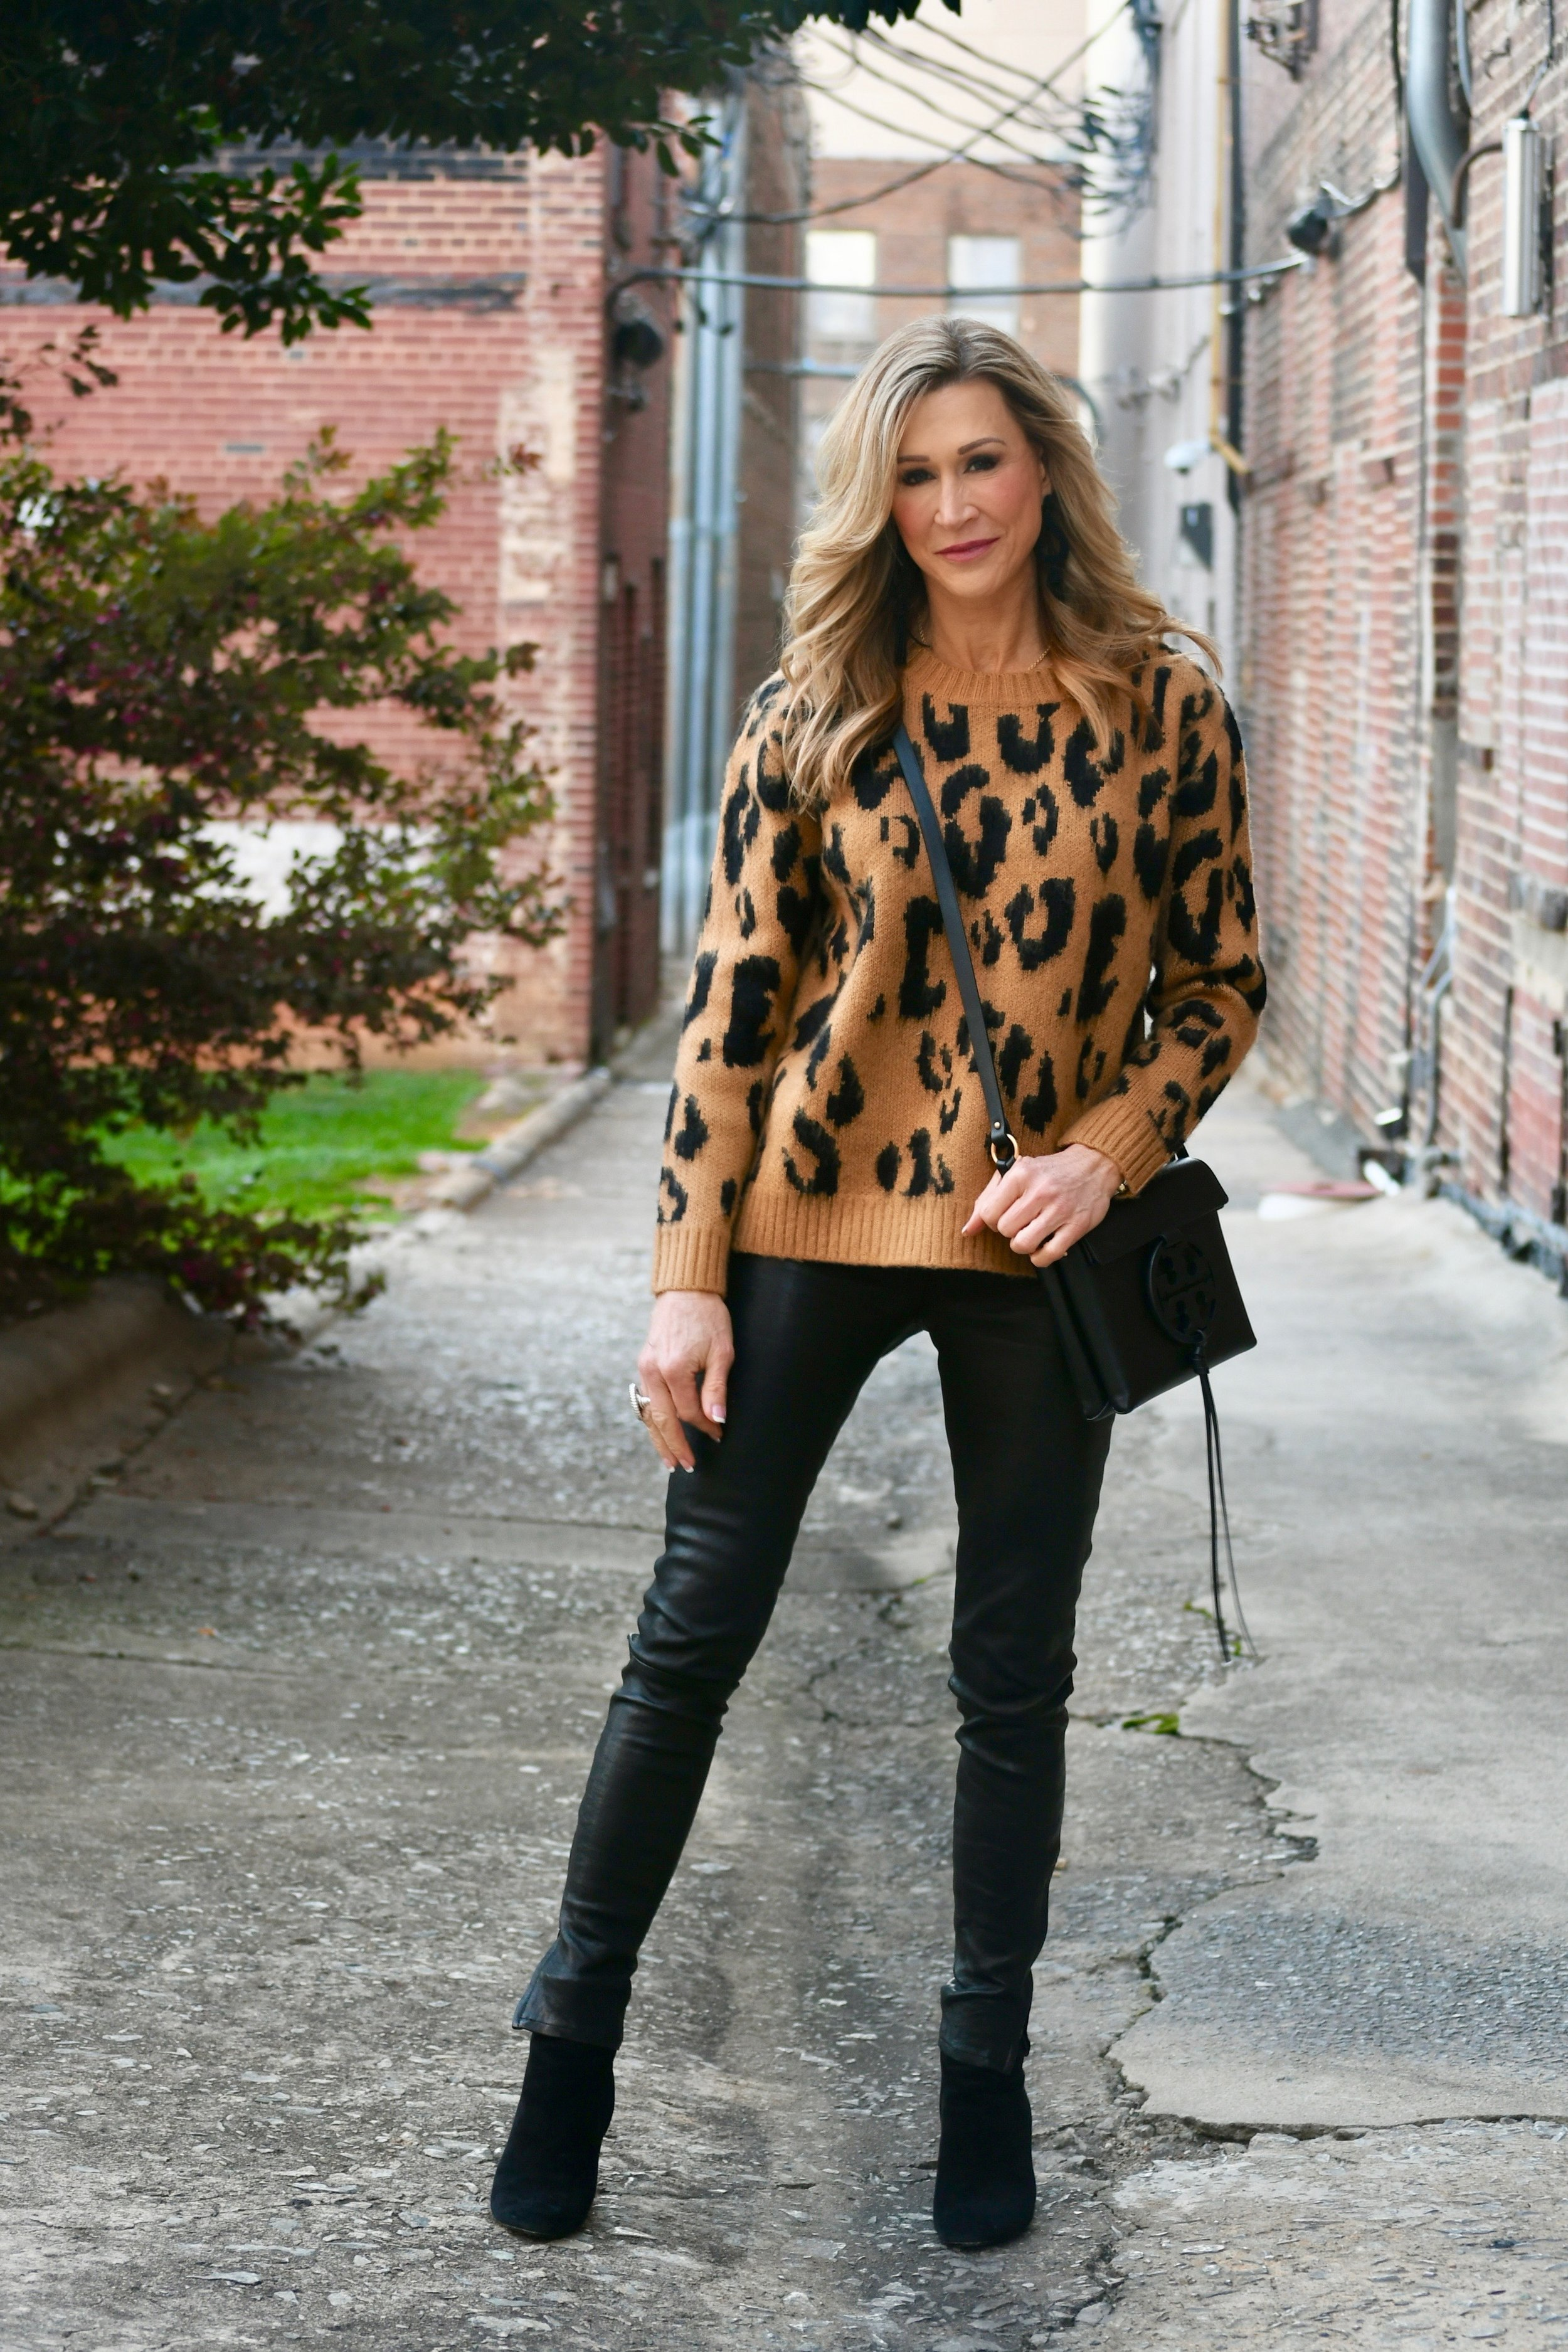 Leopard sweater with leather pants